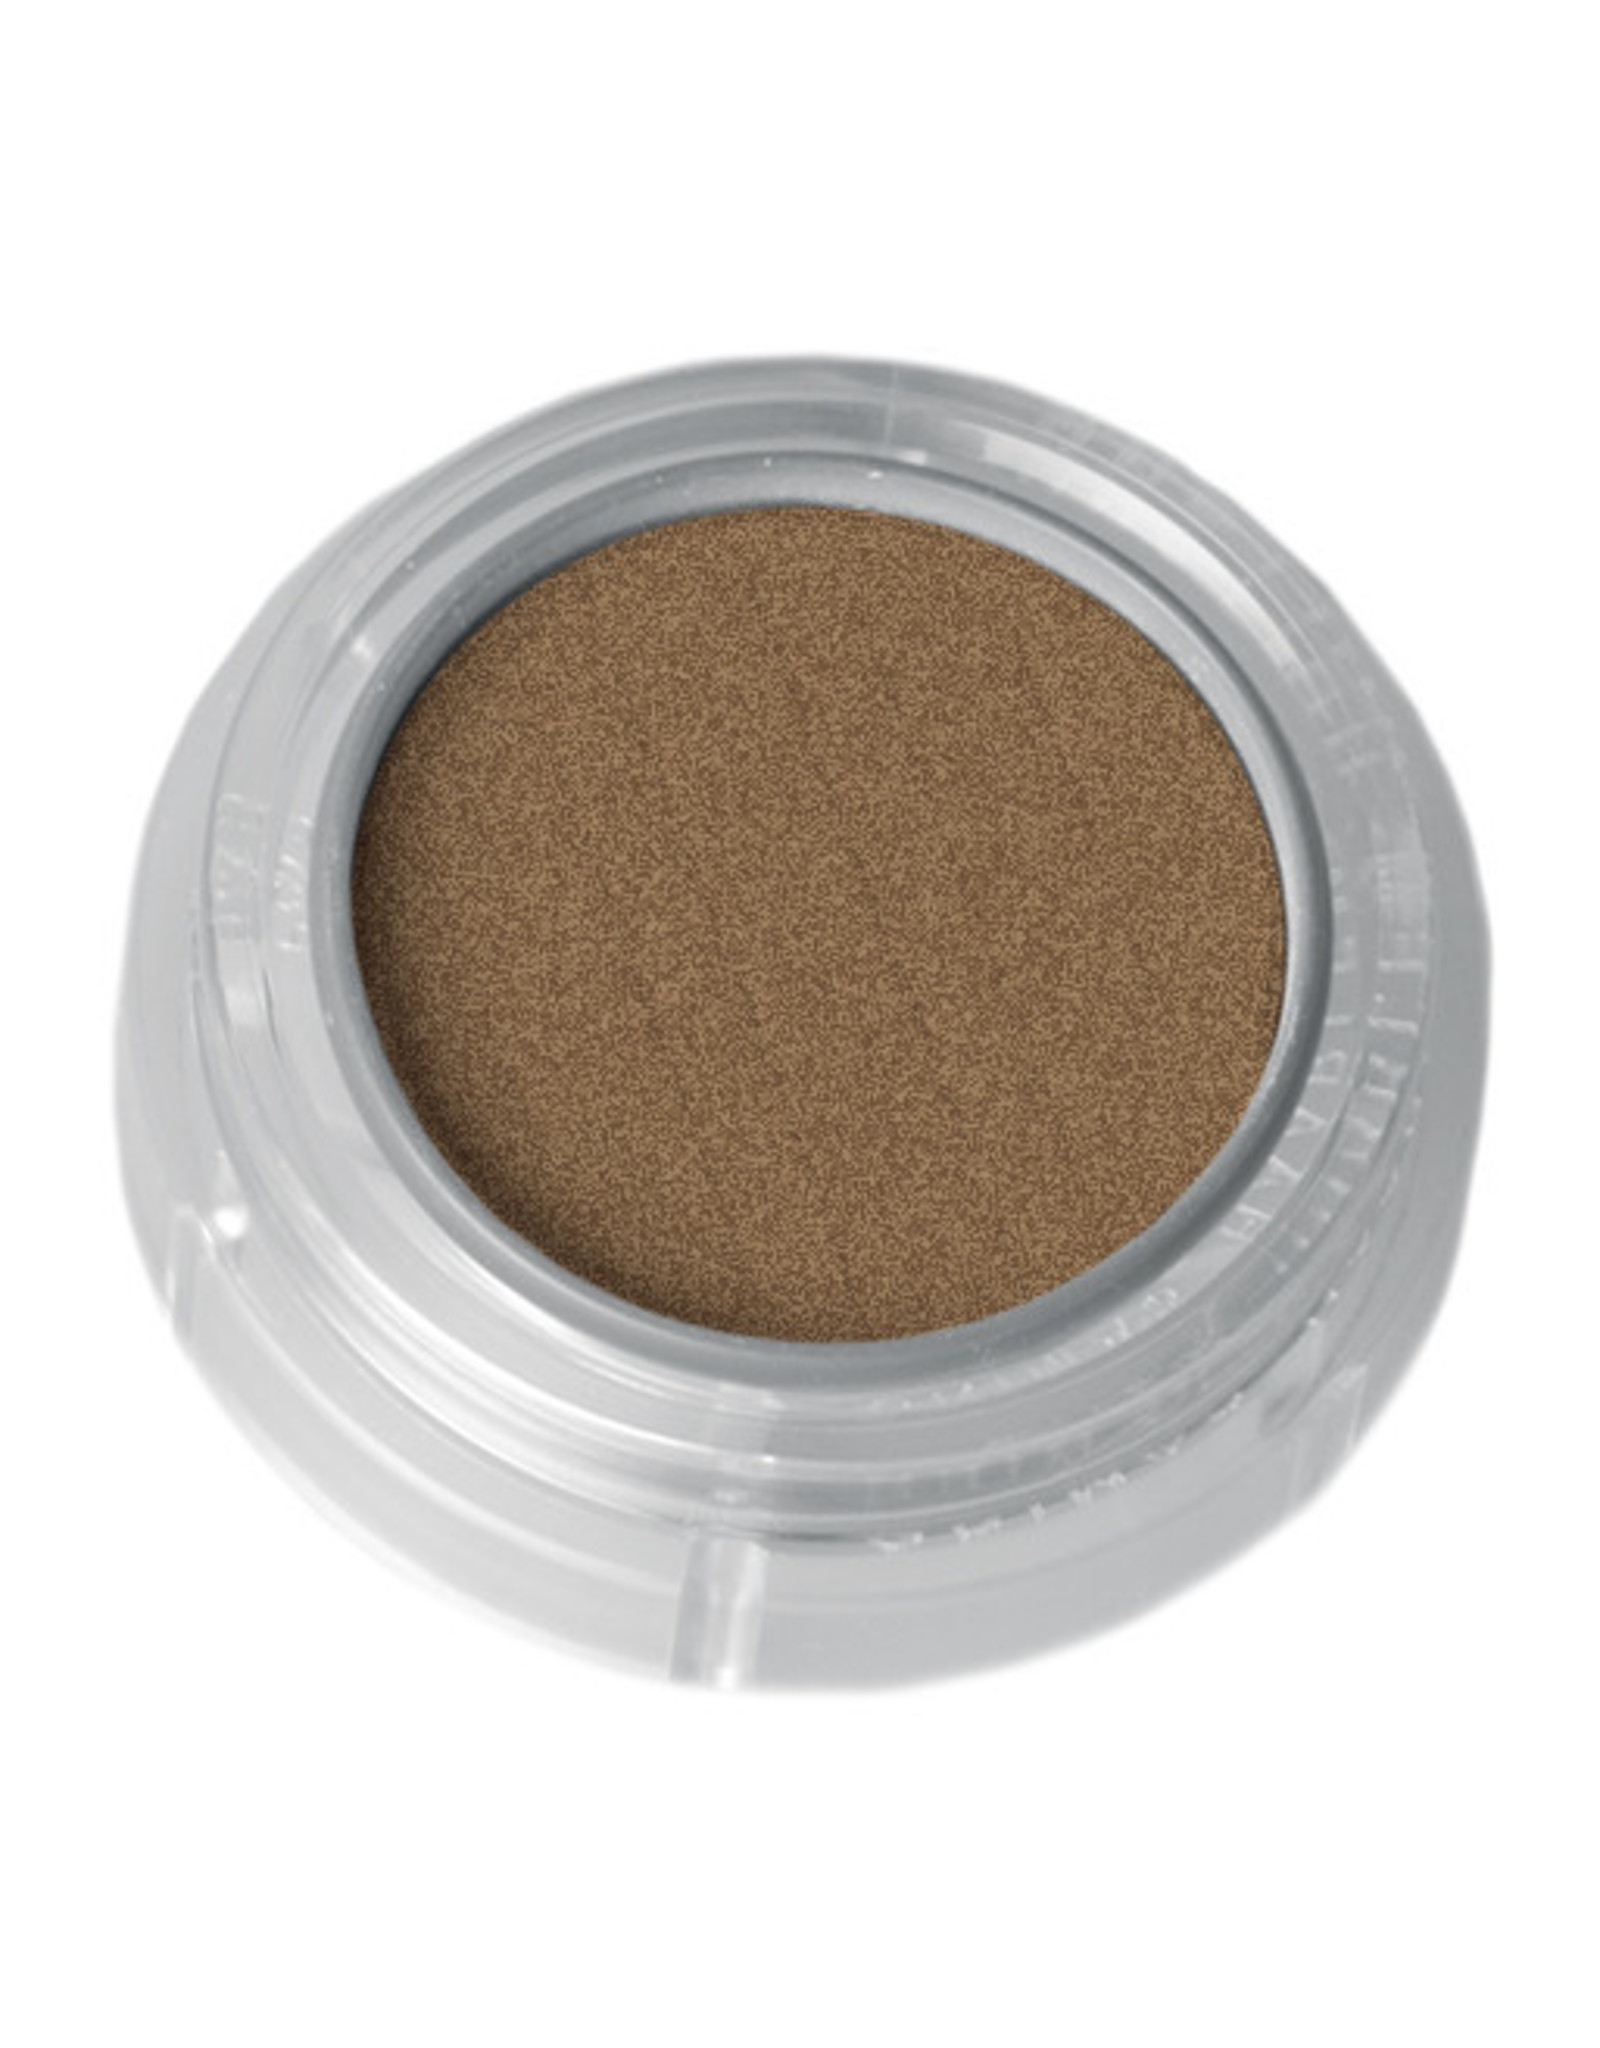 Grimas EYESHADOW/ROUGE PEARL 786 Pearl Lichtbruin A1 (2,5 g)